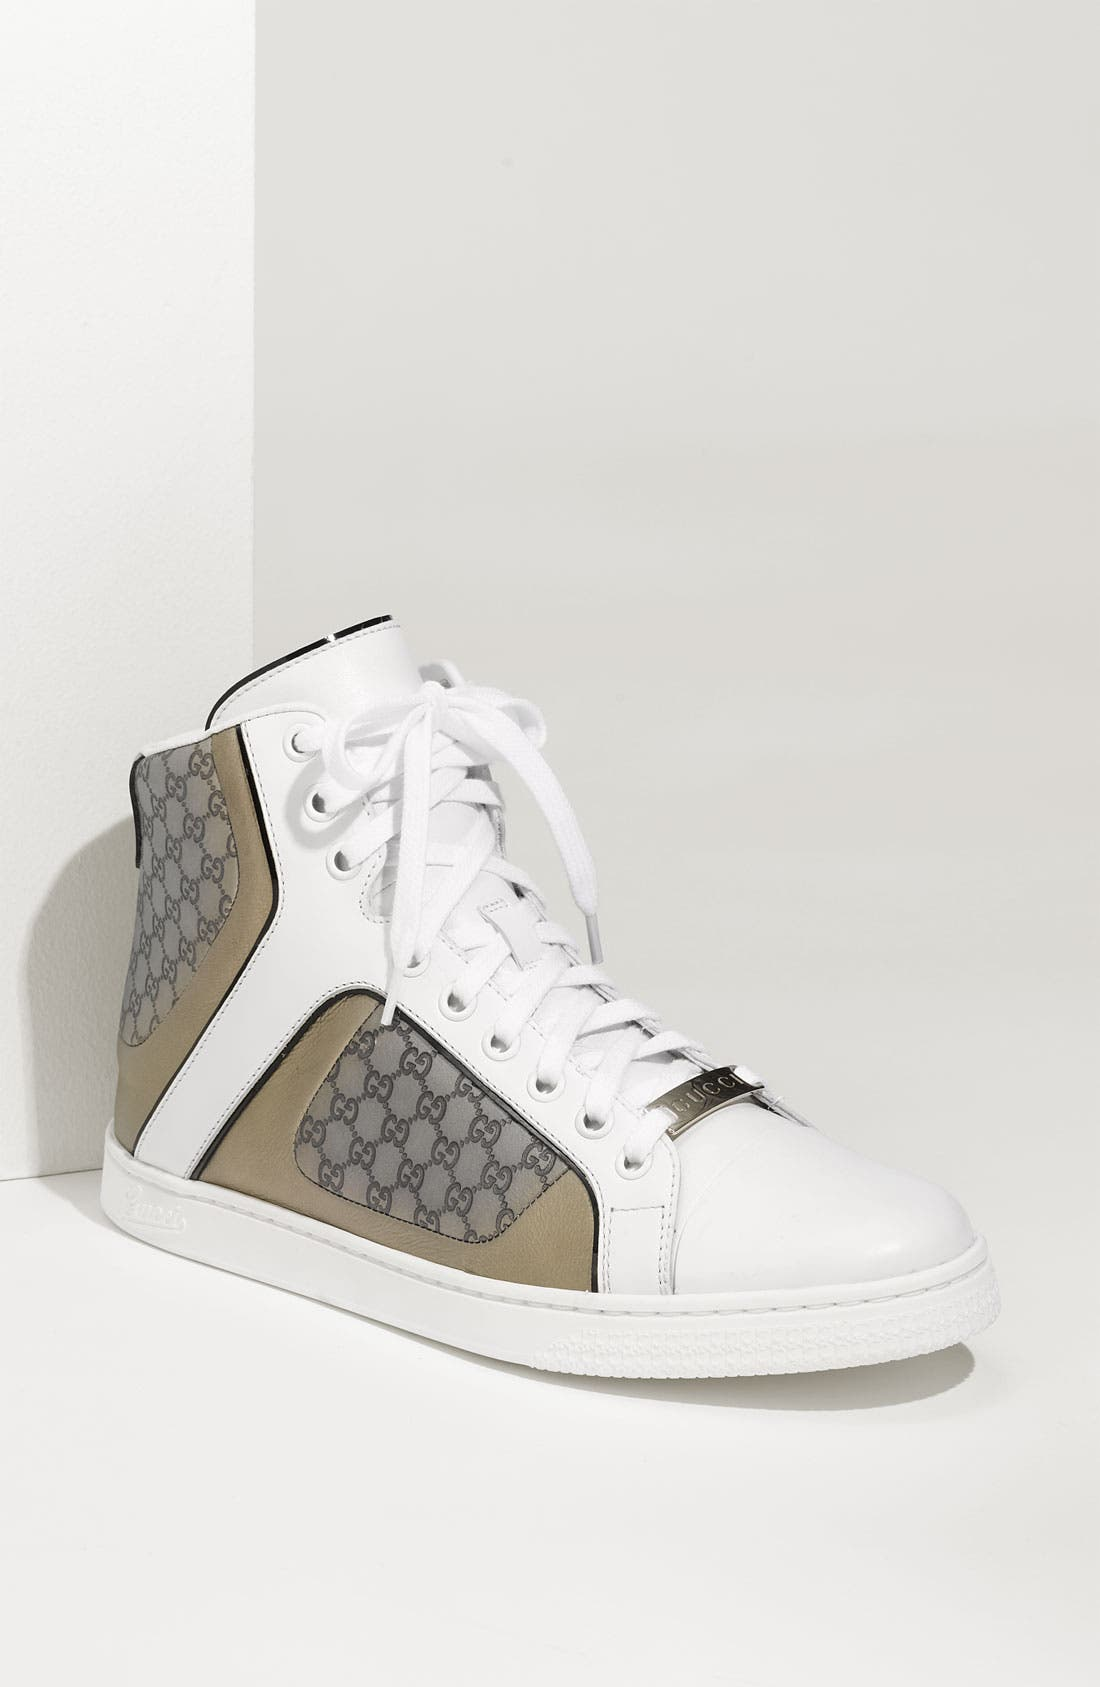 Main Image - Gucci 'Coda Pop' High Top Sneaker